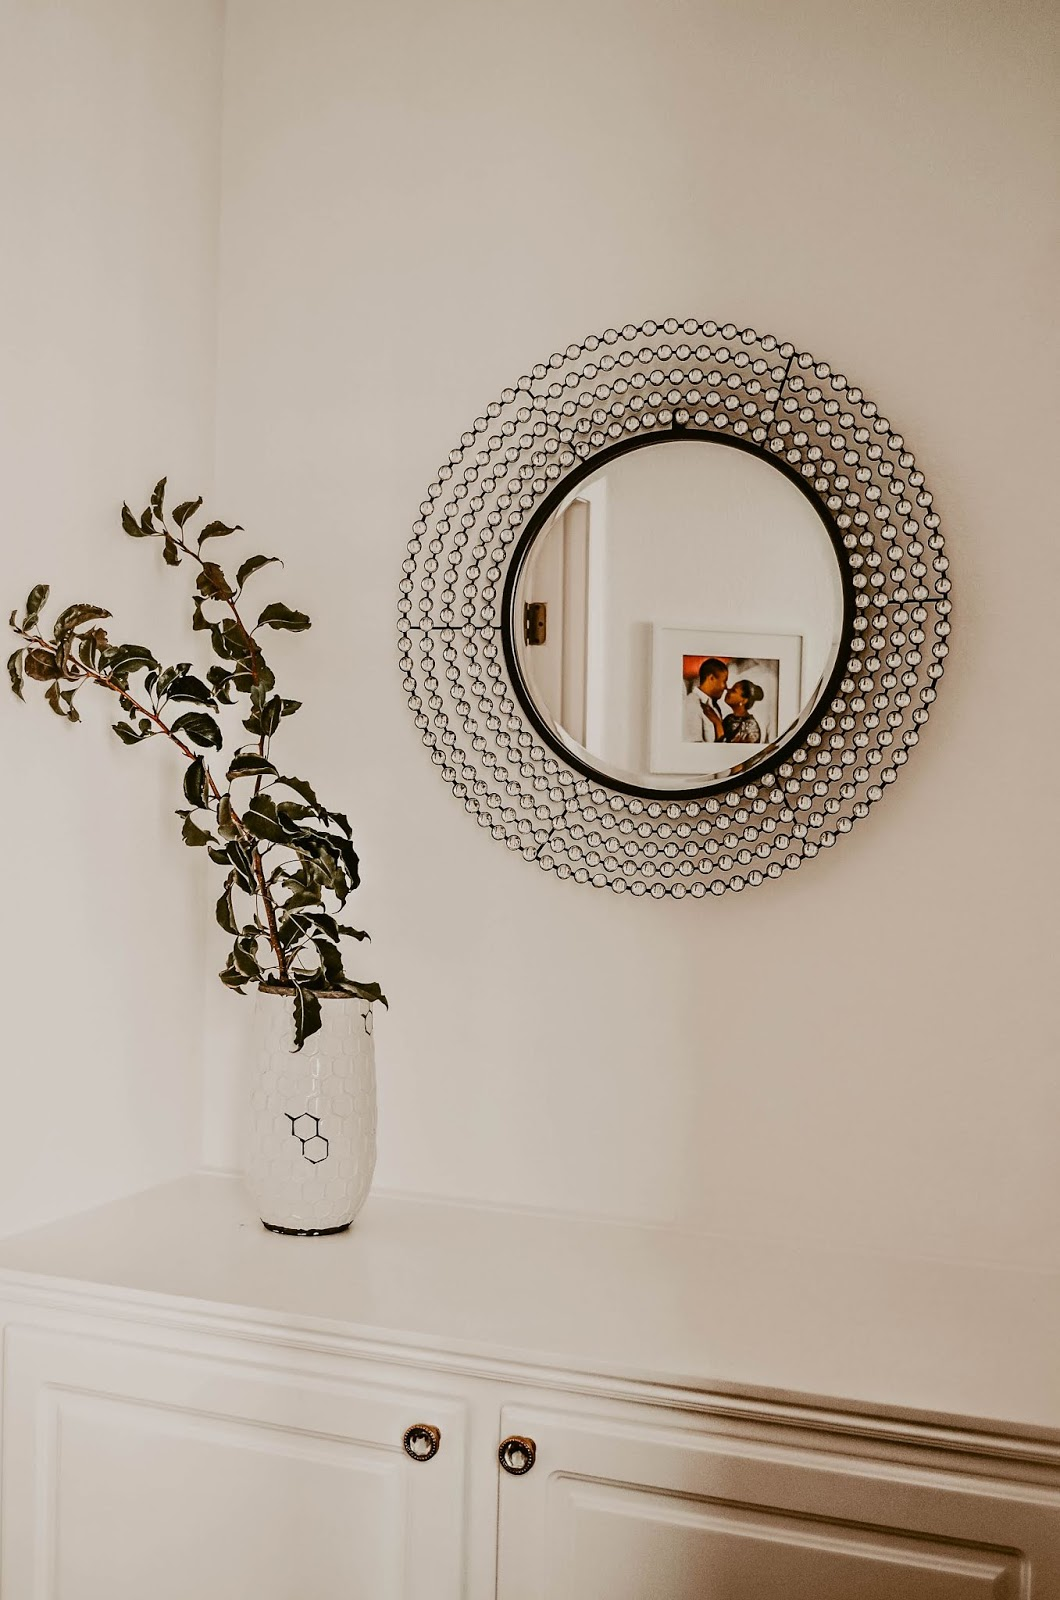 7-ways-how-to-make-your-house-a-home-on-a-budget-ways-to-beautify-your-home